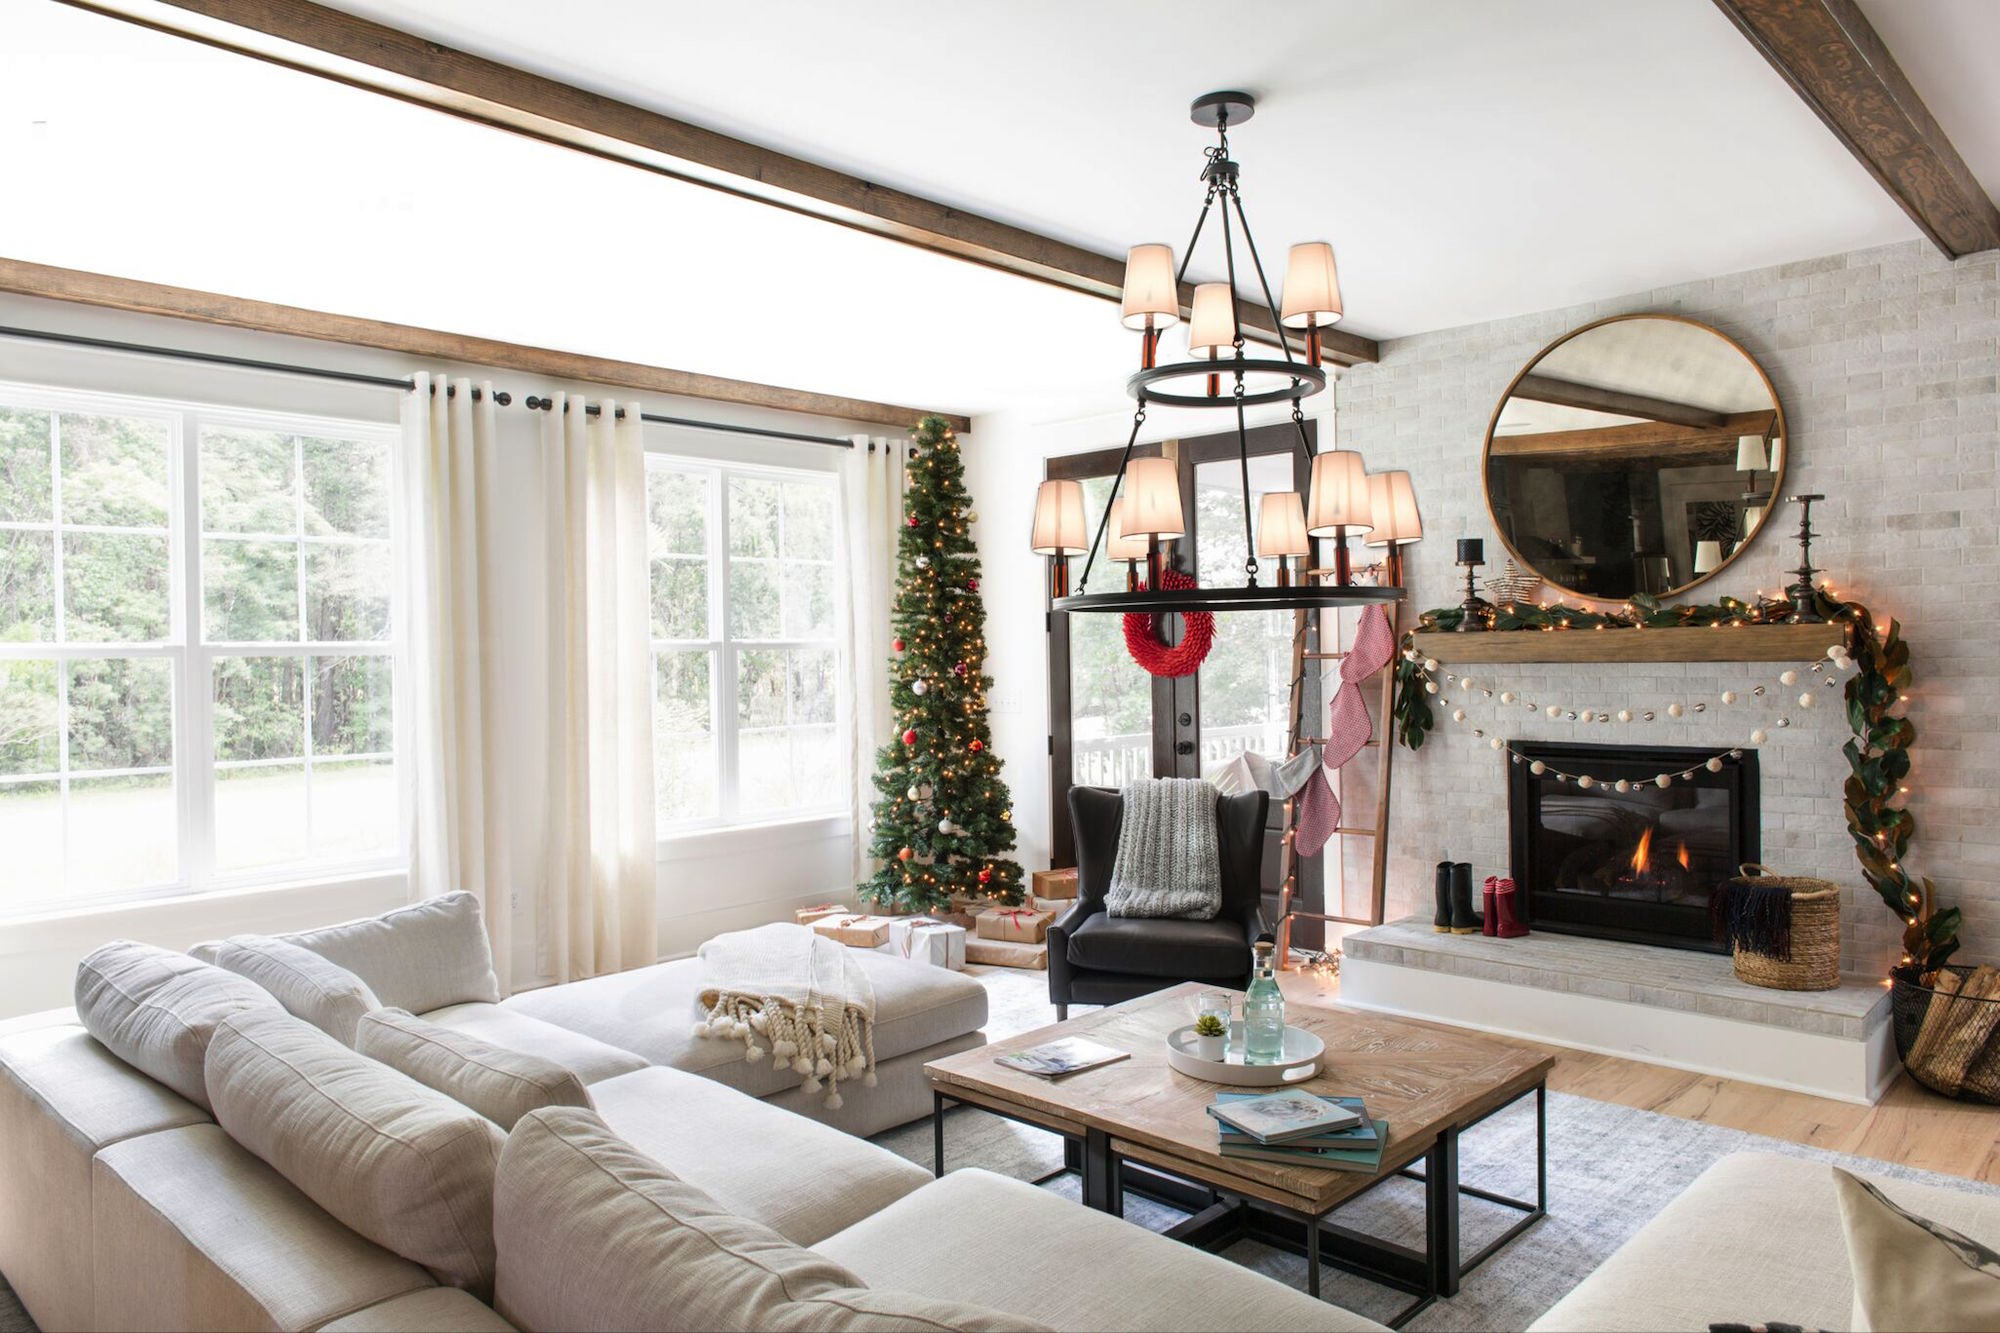 Crescent Homes Seasonal Incentive Home for the Holidays: Holiday Parties at Your Home